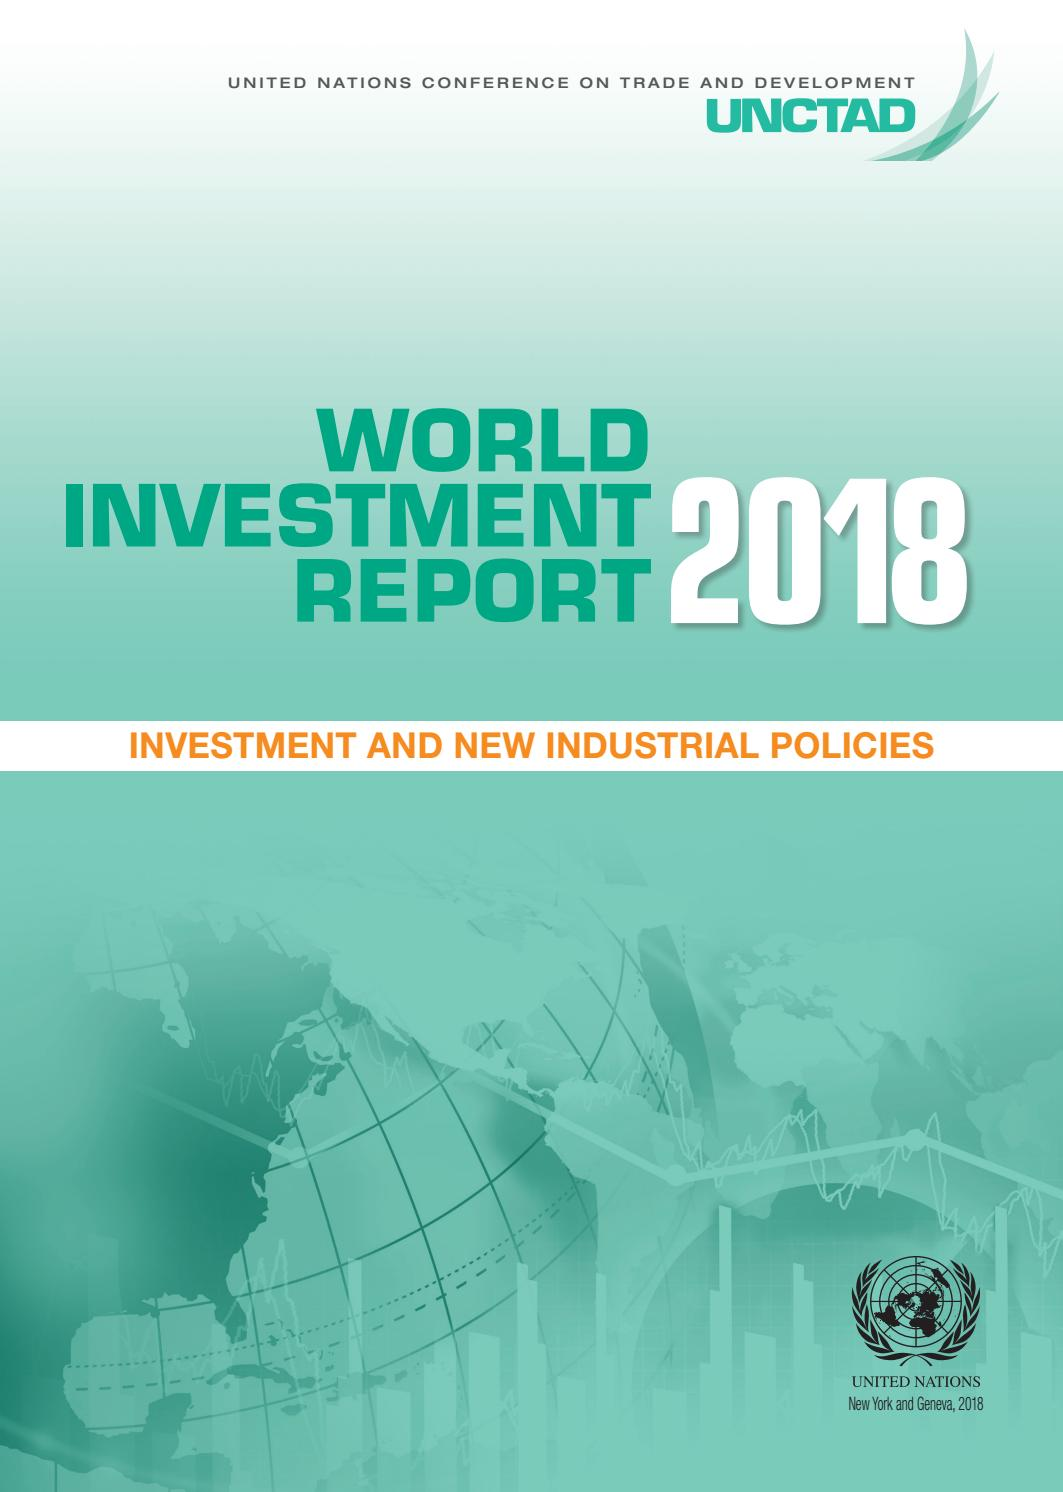 World Investment Report 2018 by United Nations Publications - issuu